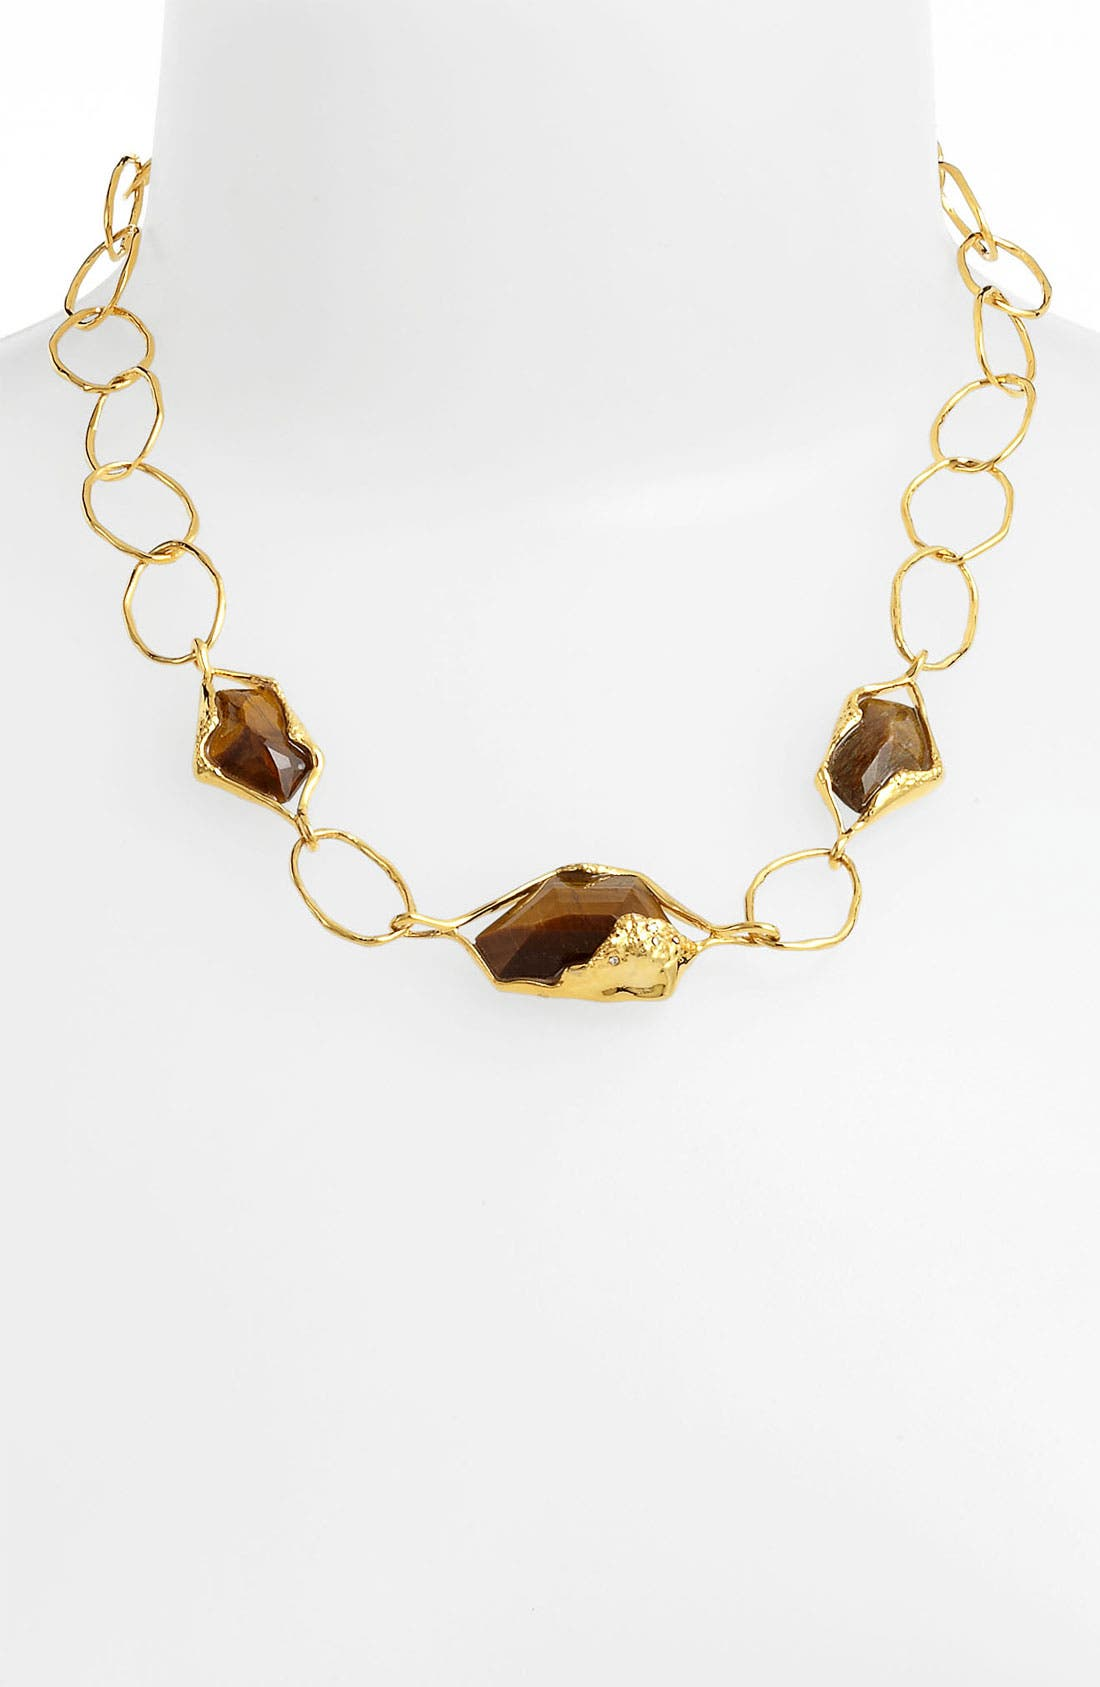 Main Image - Alexis Bittar 'Miss Havisham - Liquid Gold' Link Necklace